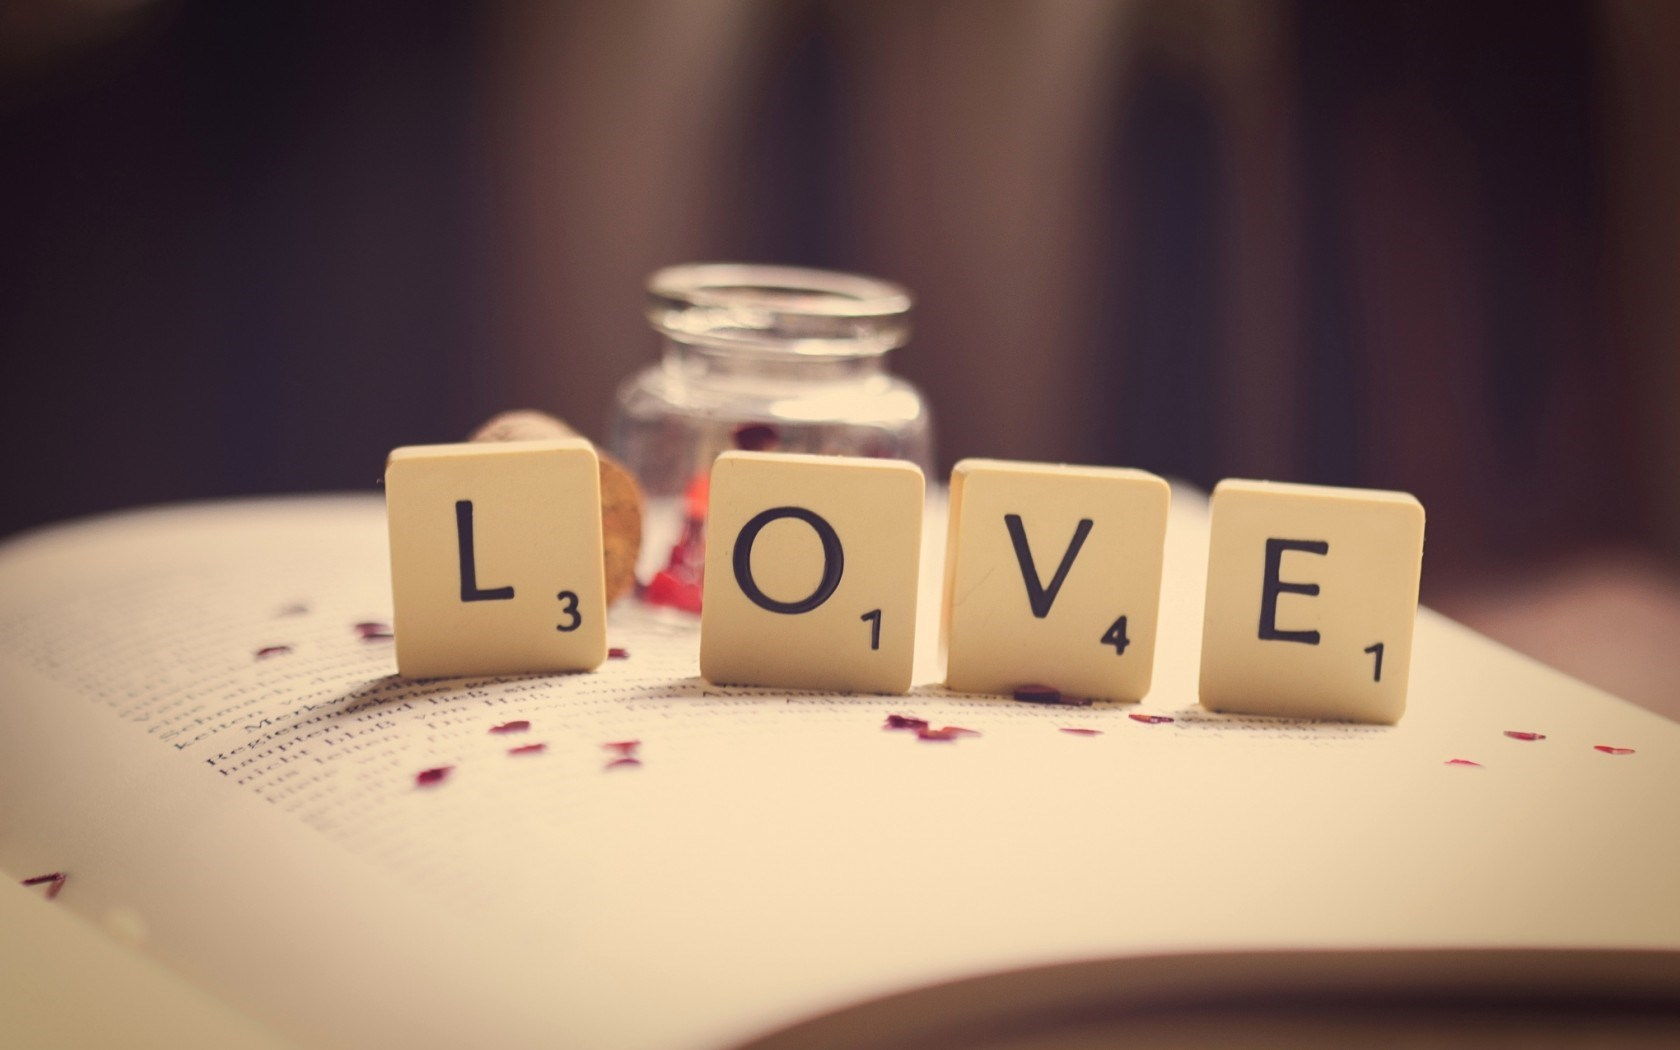 book-love-word-letters-numbers-macro-hd-wallpaper.jpg | Mi Casa De Amor